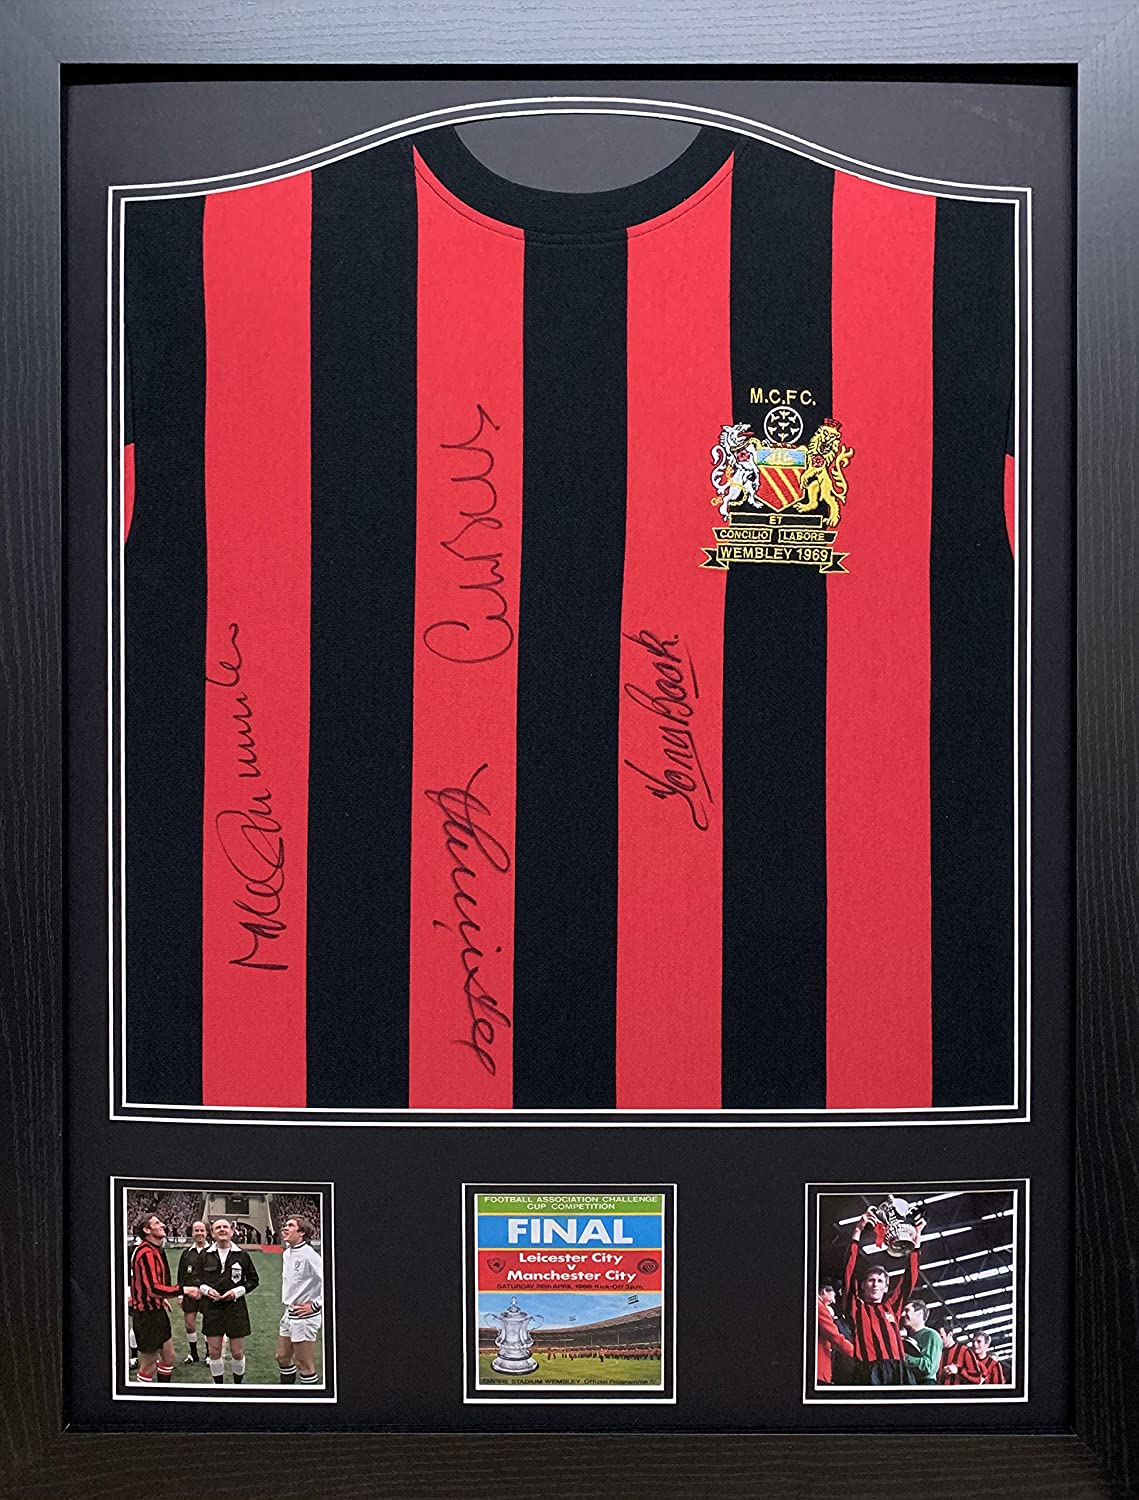 Allstarsignings Framed Official retro Manchester City 1969 Cup Final football shirt signed by Bell//Lee//Summerbee//Book with COA and proof Professionally framed and ready to hang.